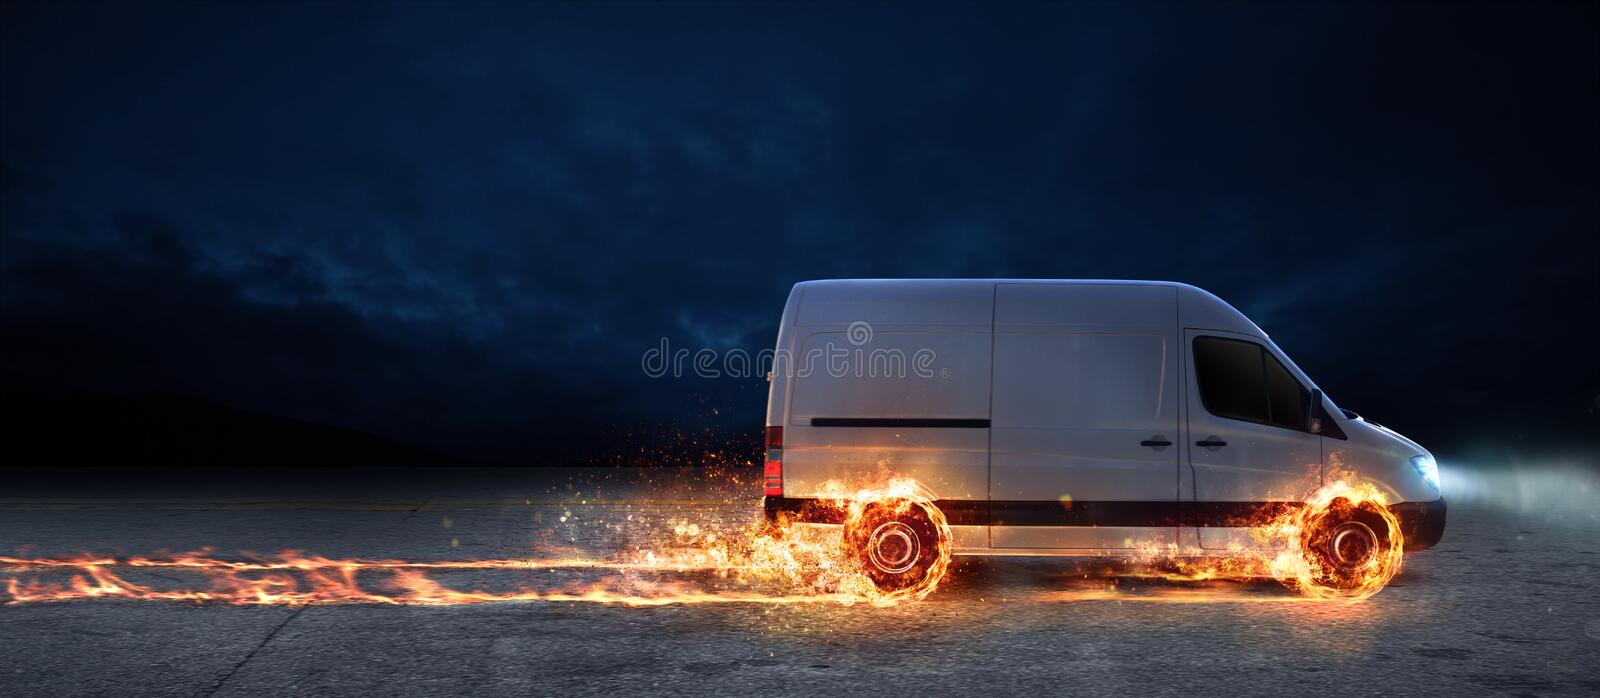 Super fast delivery of package service with van with wheels on fire stock image